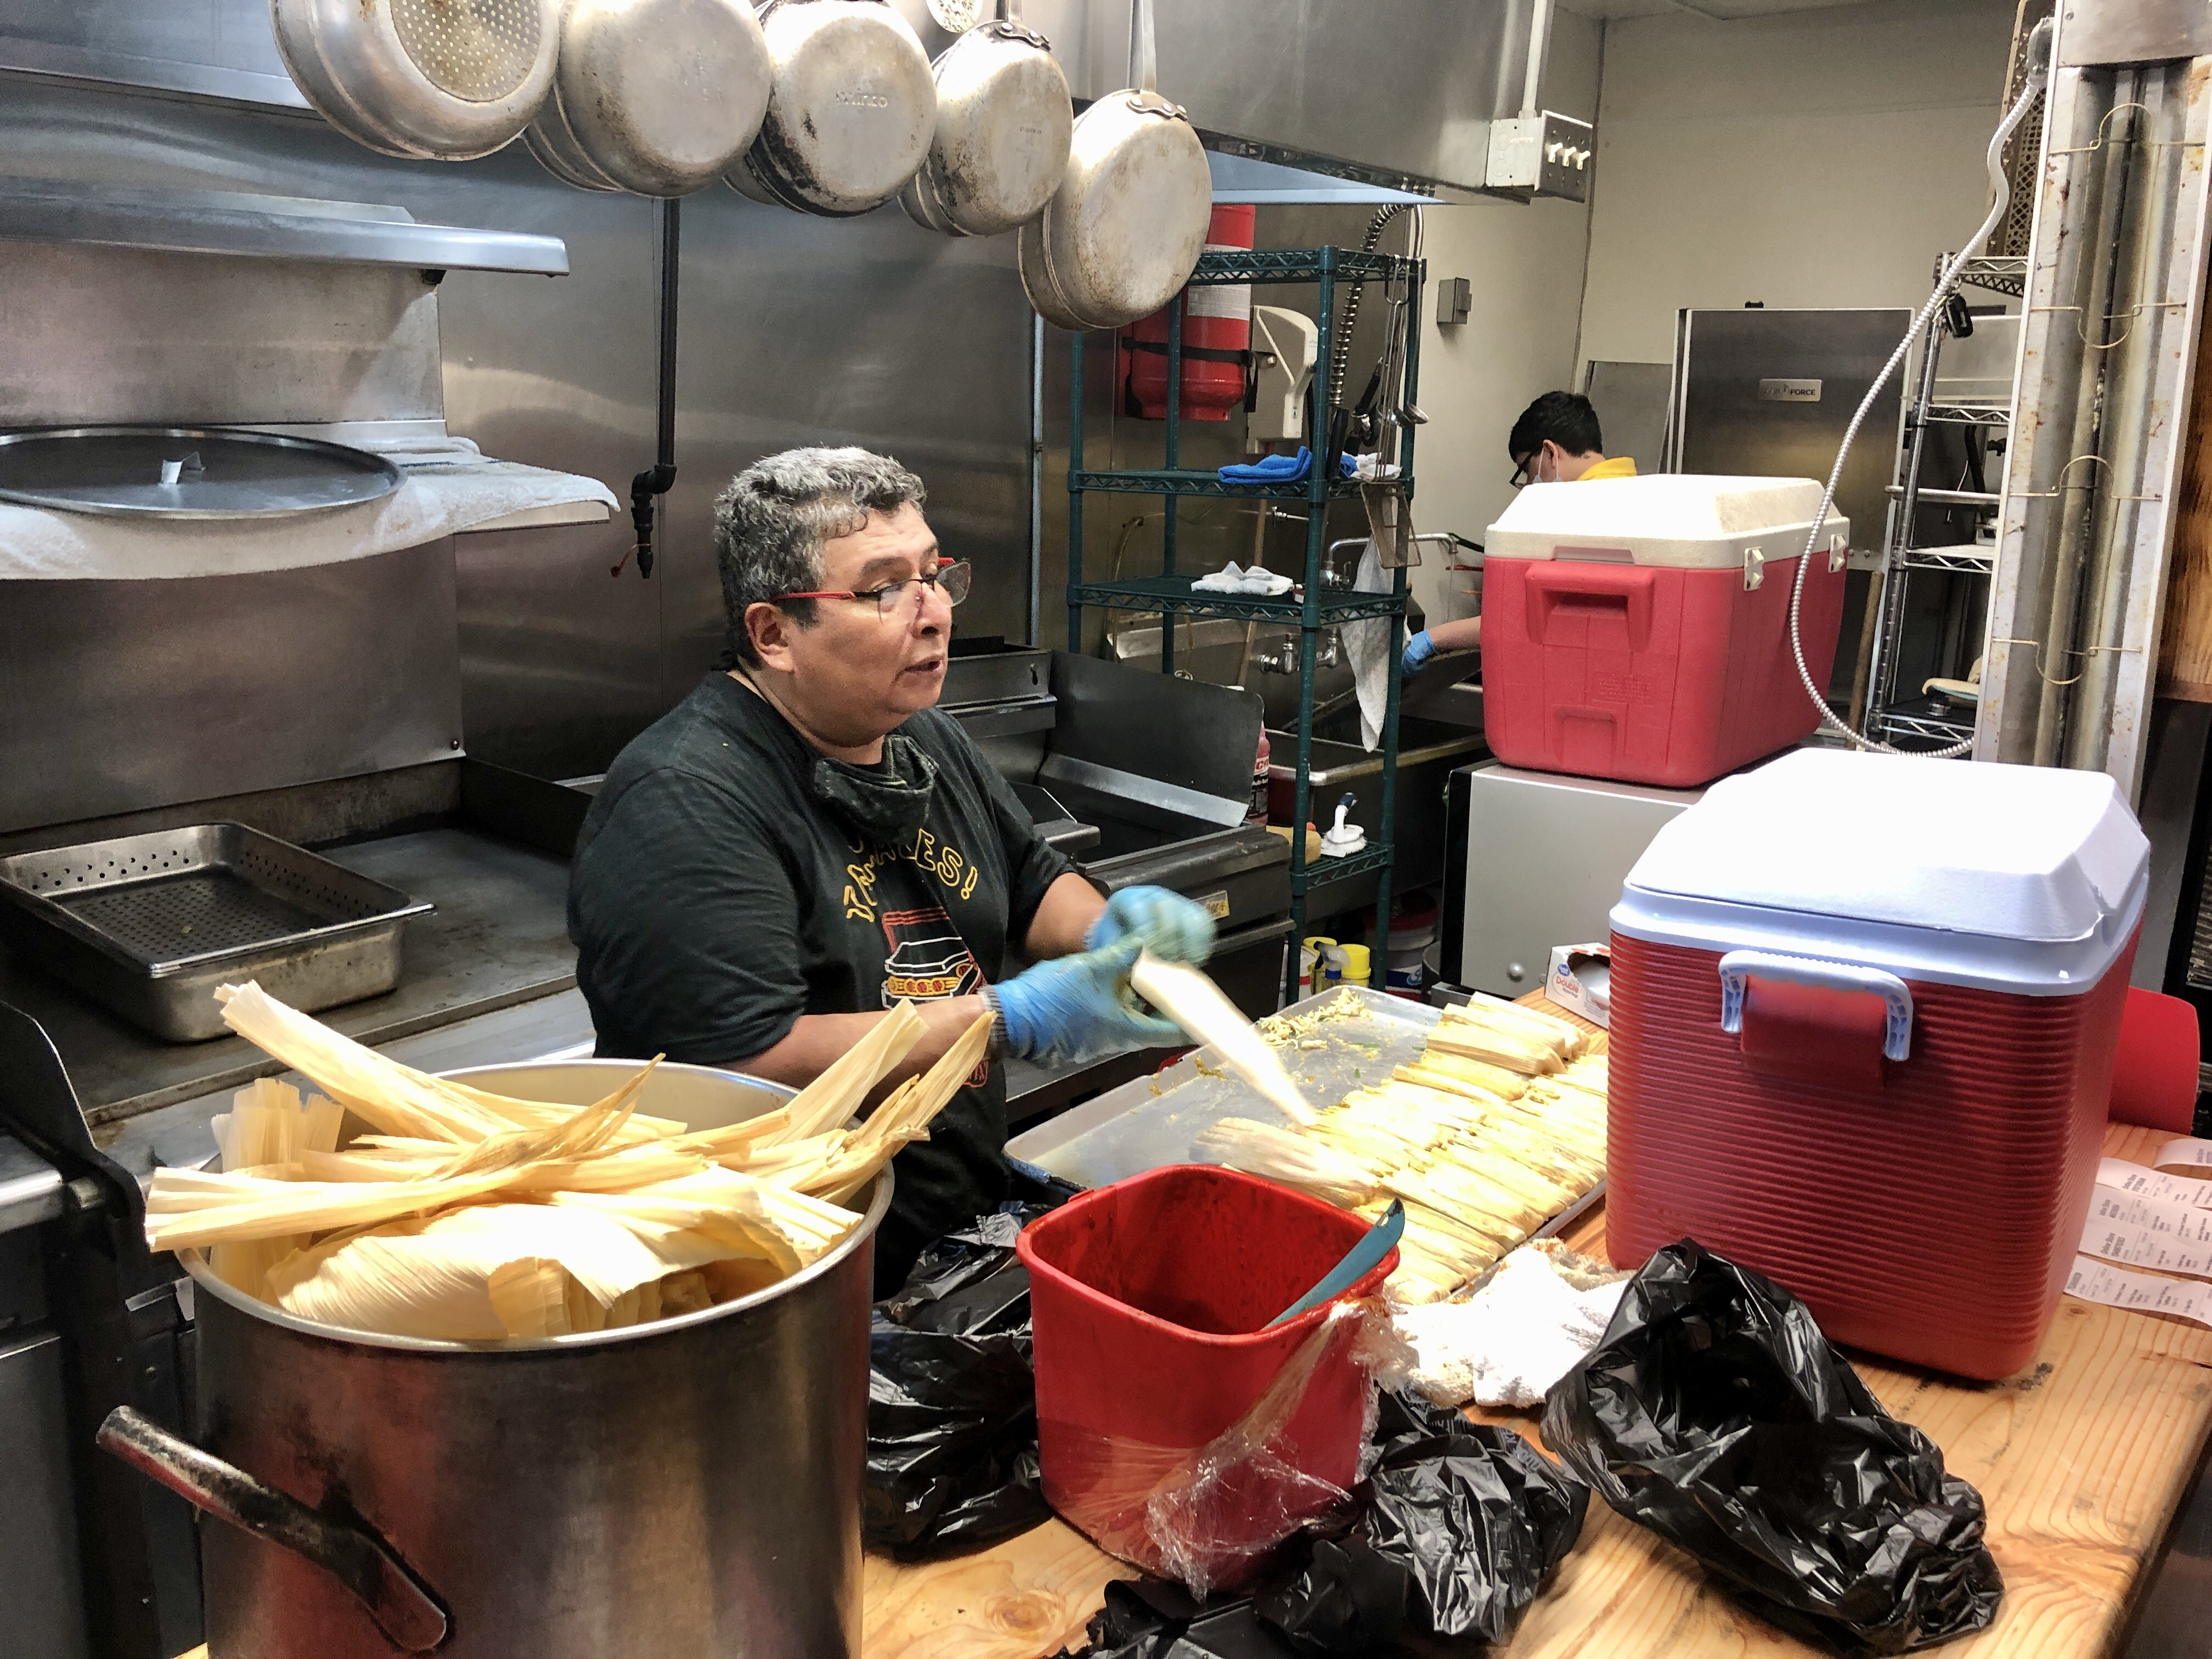 A man making tamales in a kitchen.